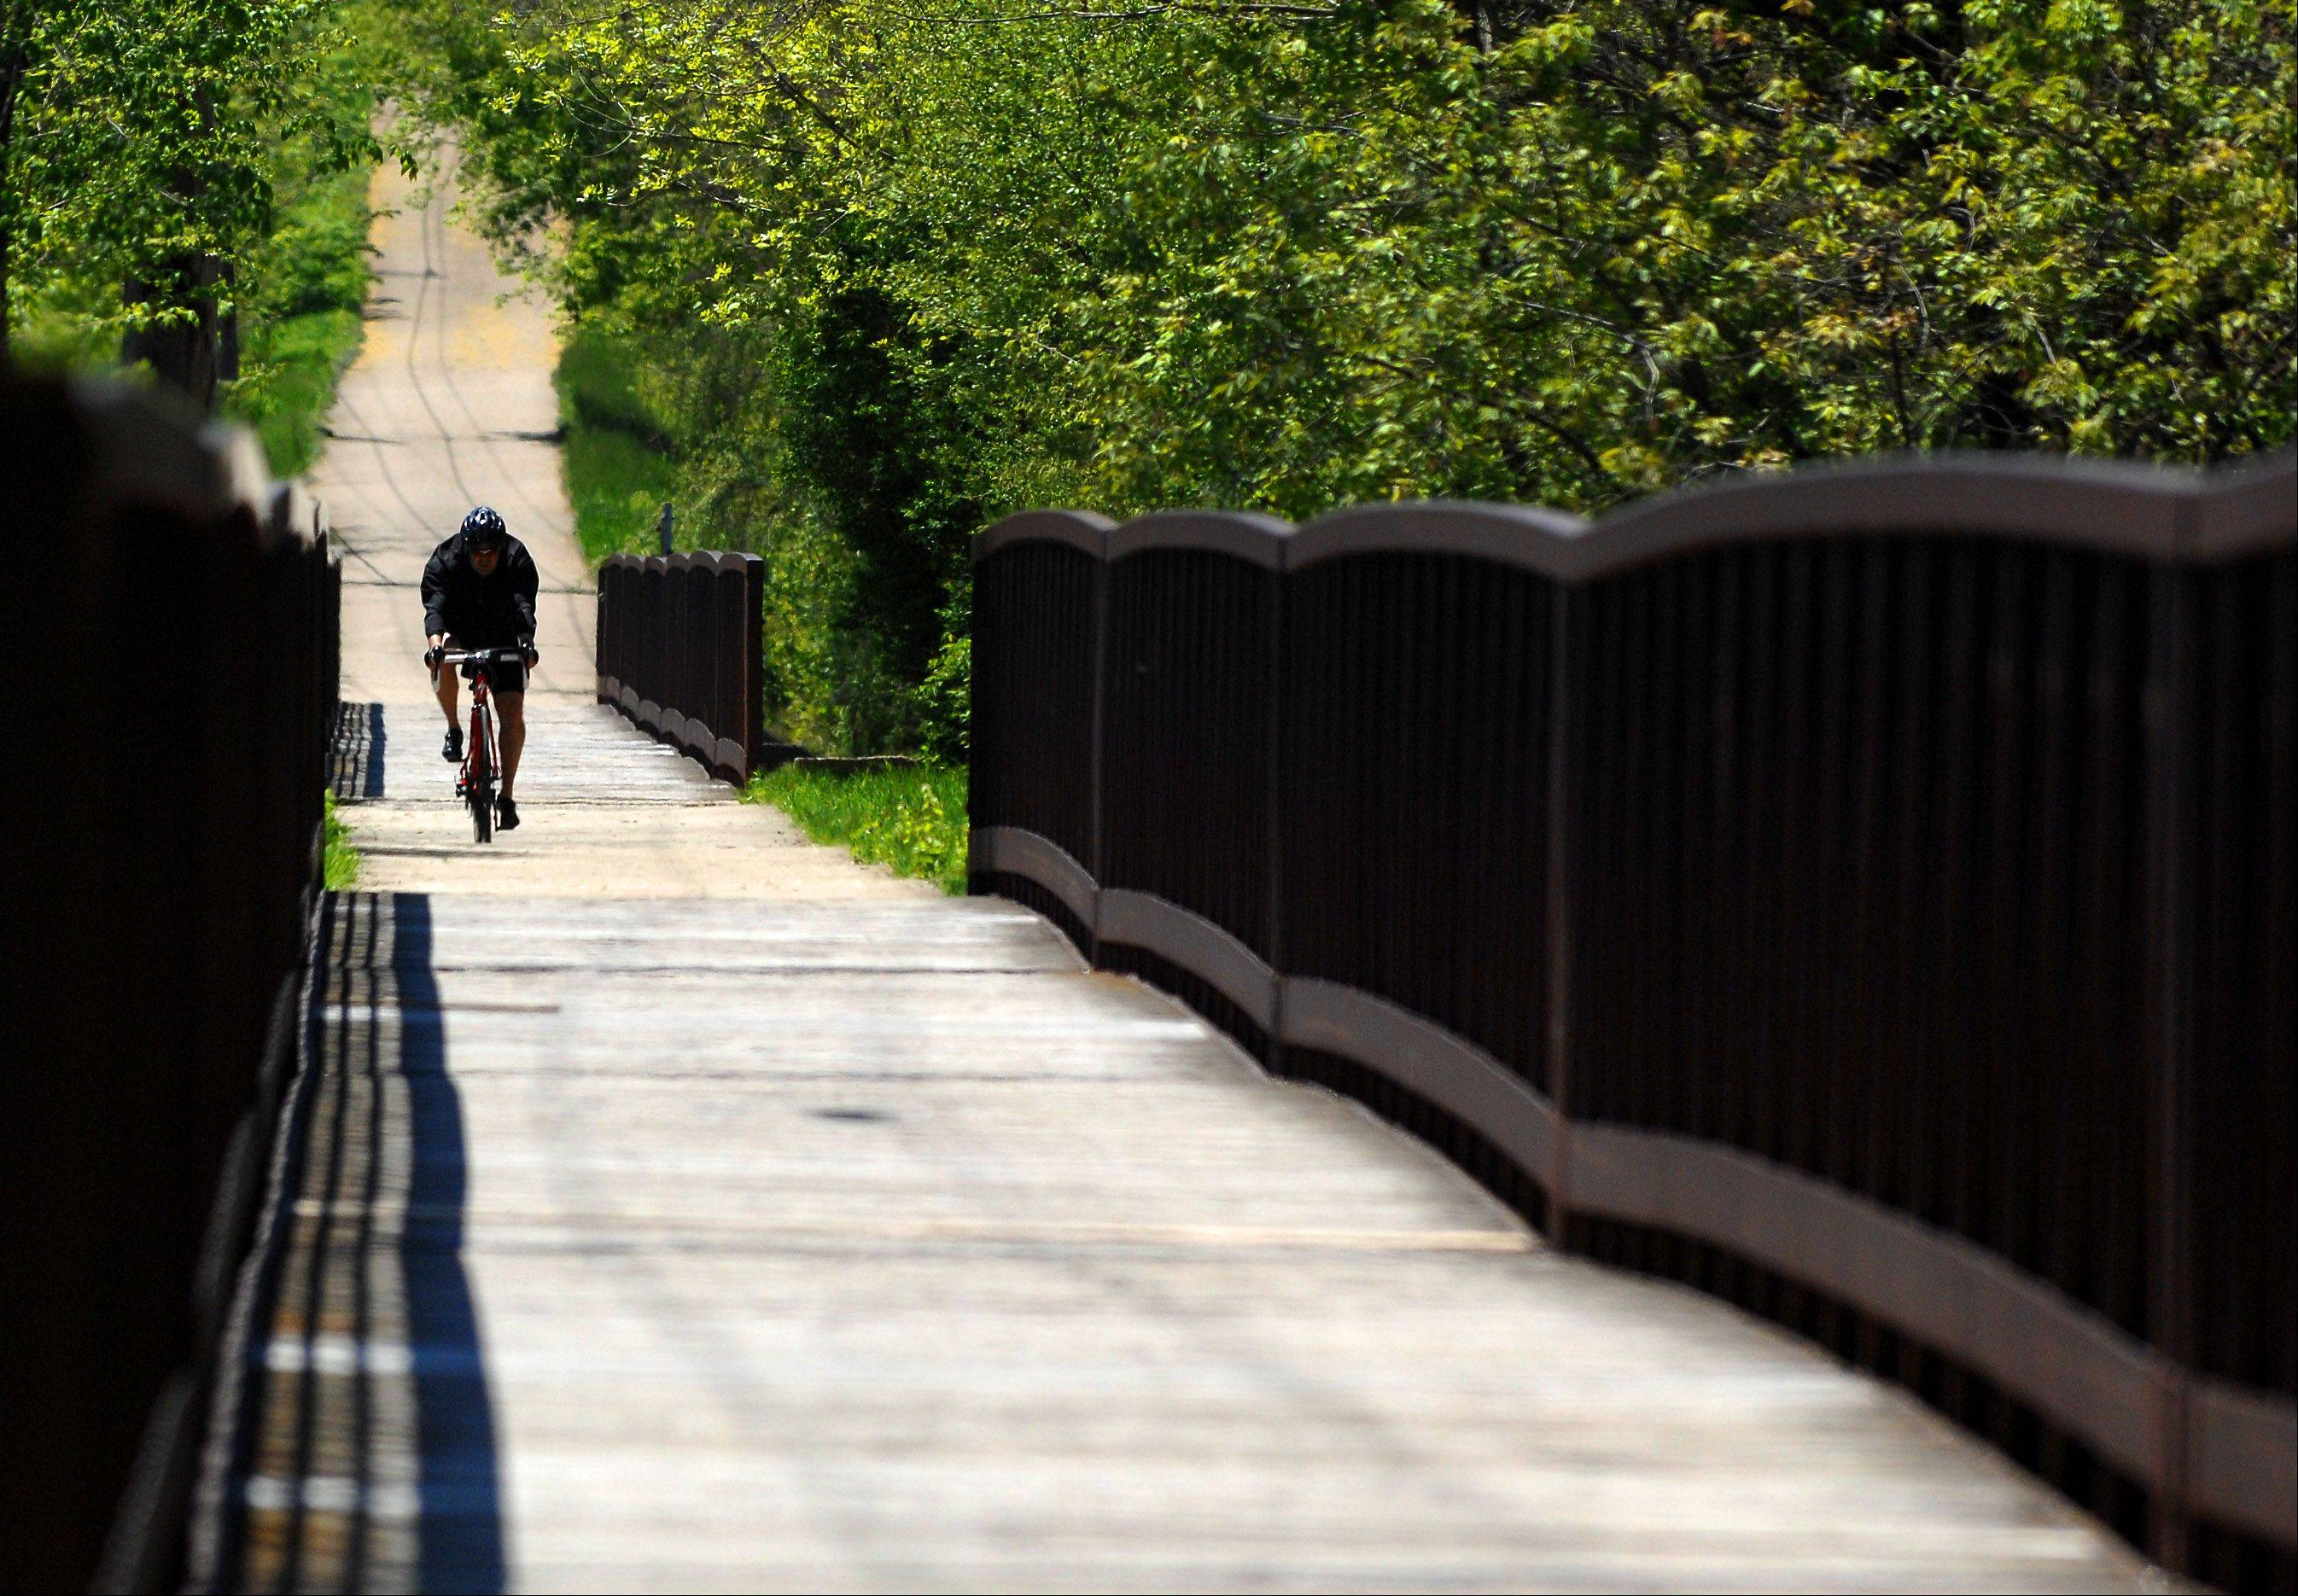 A biker approaches the bike trail bridge to cross over the Fox River and into the Jon Duerr Forest Preserve in South Elgin Monday afternoon.